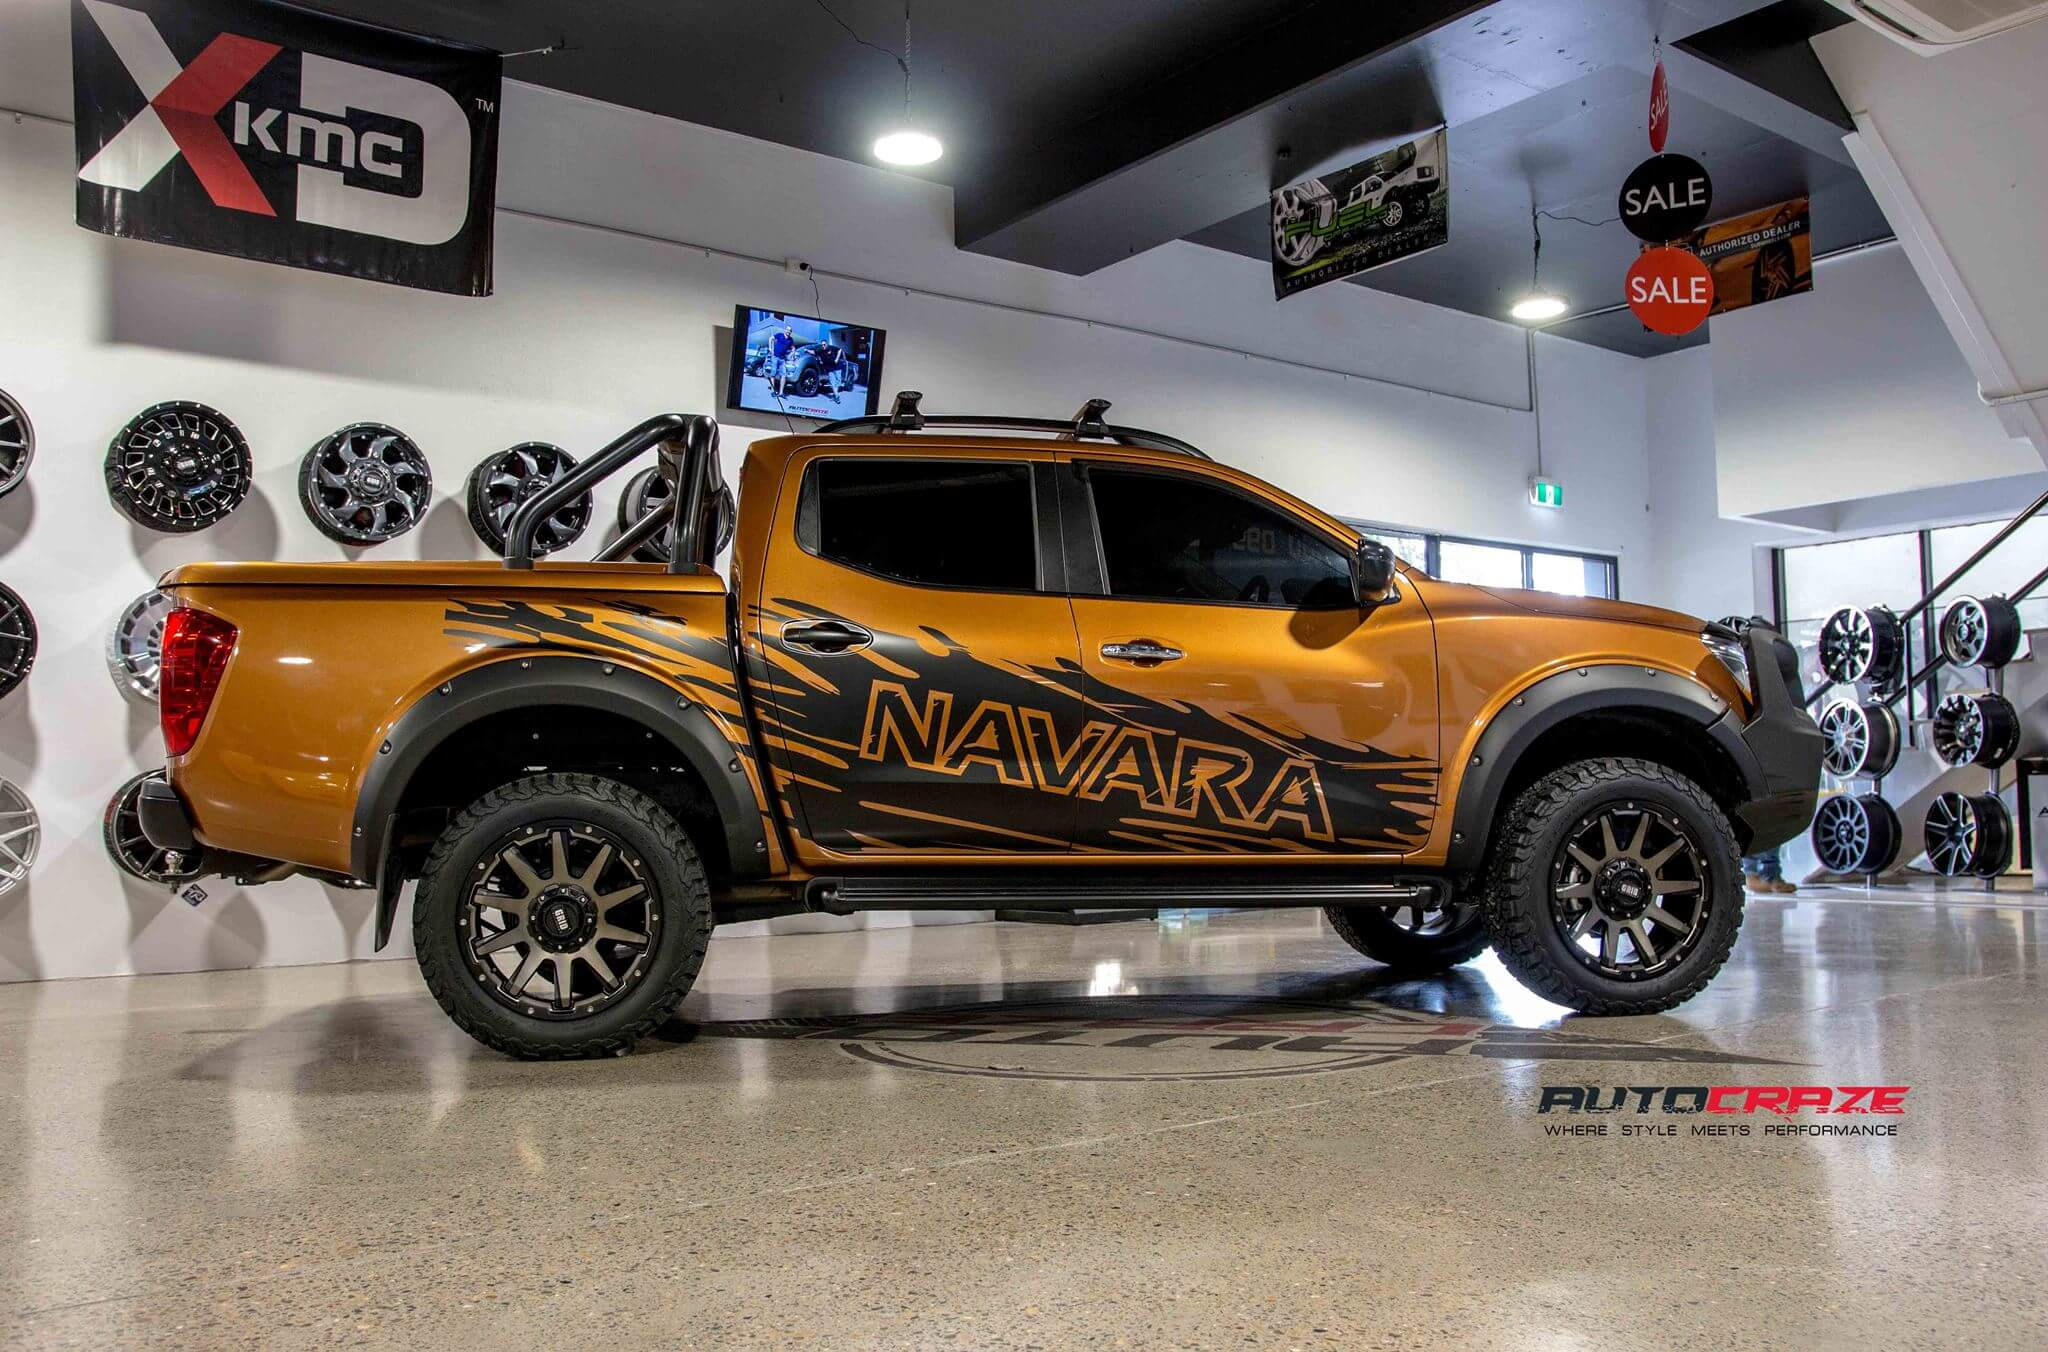 nissan navara wheels and tyres for sale 4x4 navara mag rims. Black Bedroom Furniture Sets. Home Design Ideas